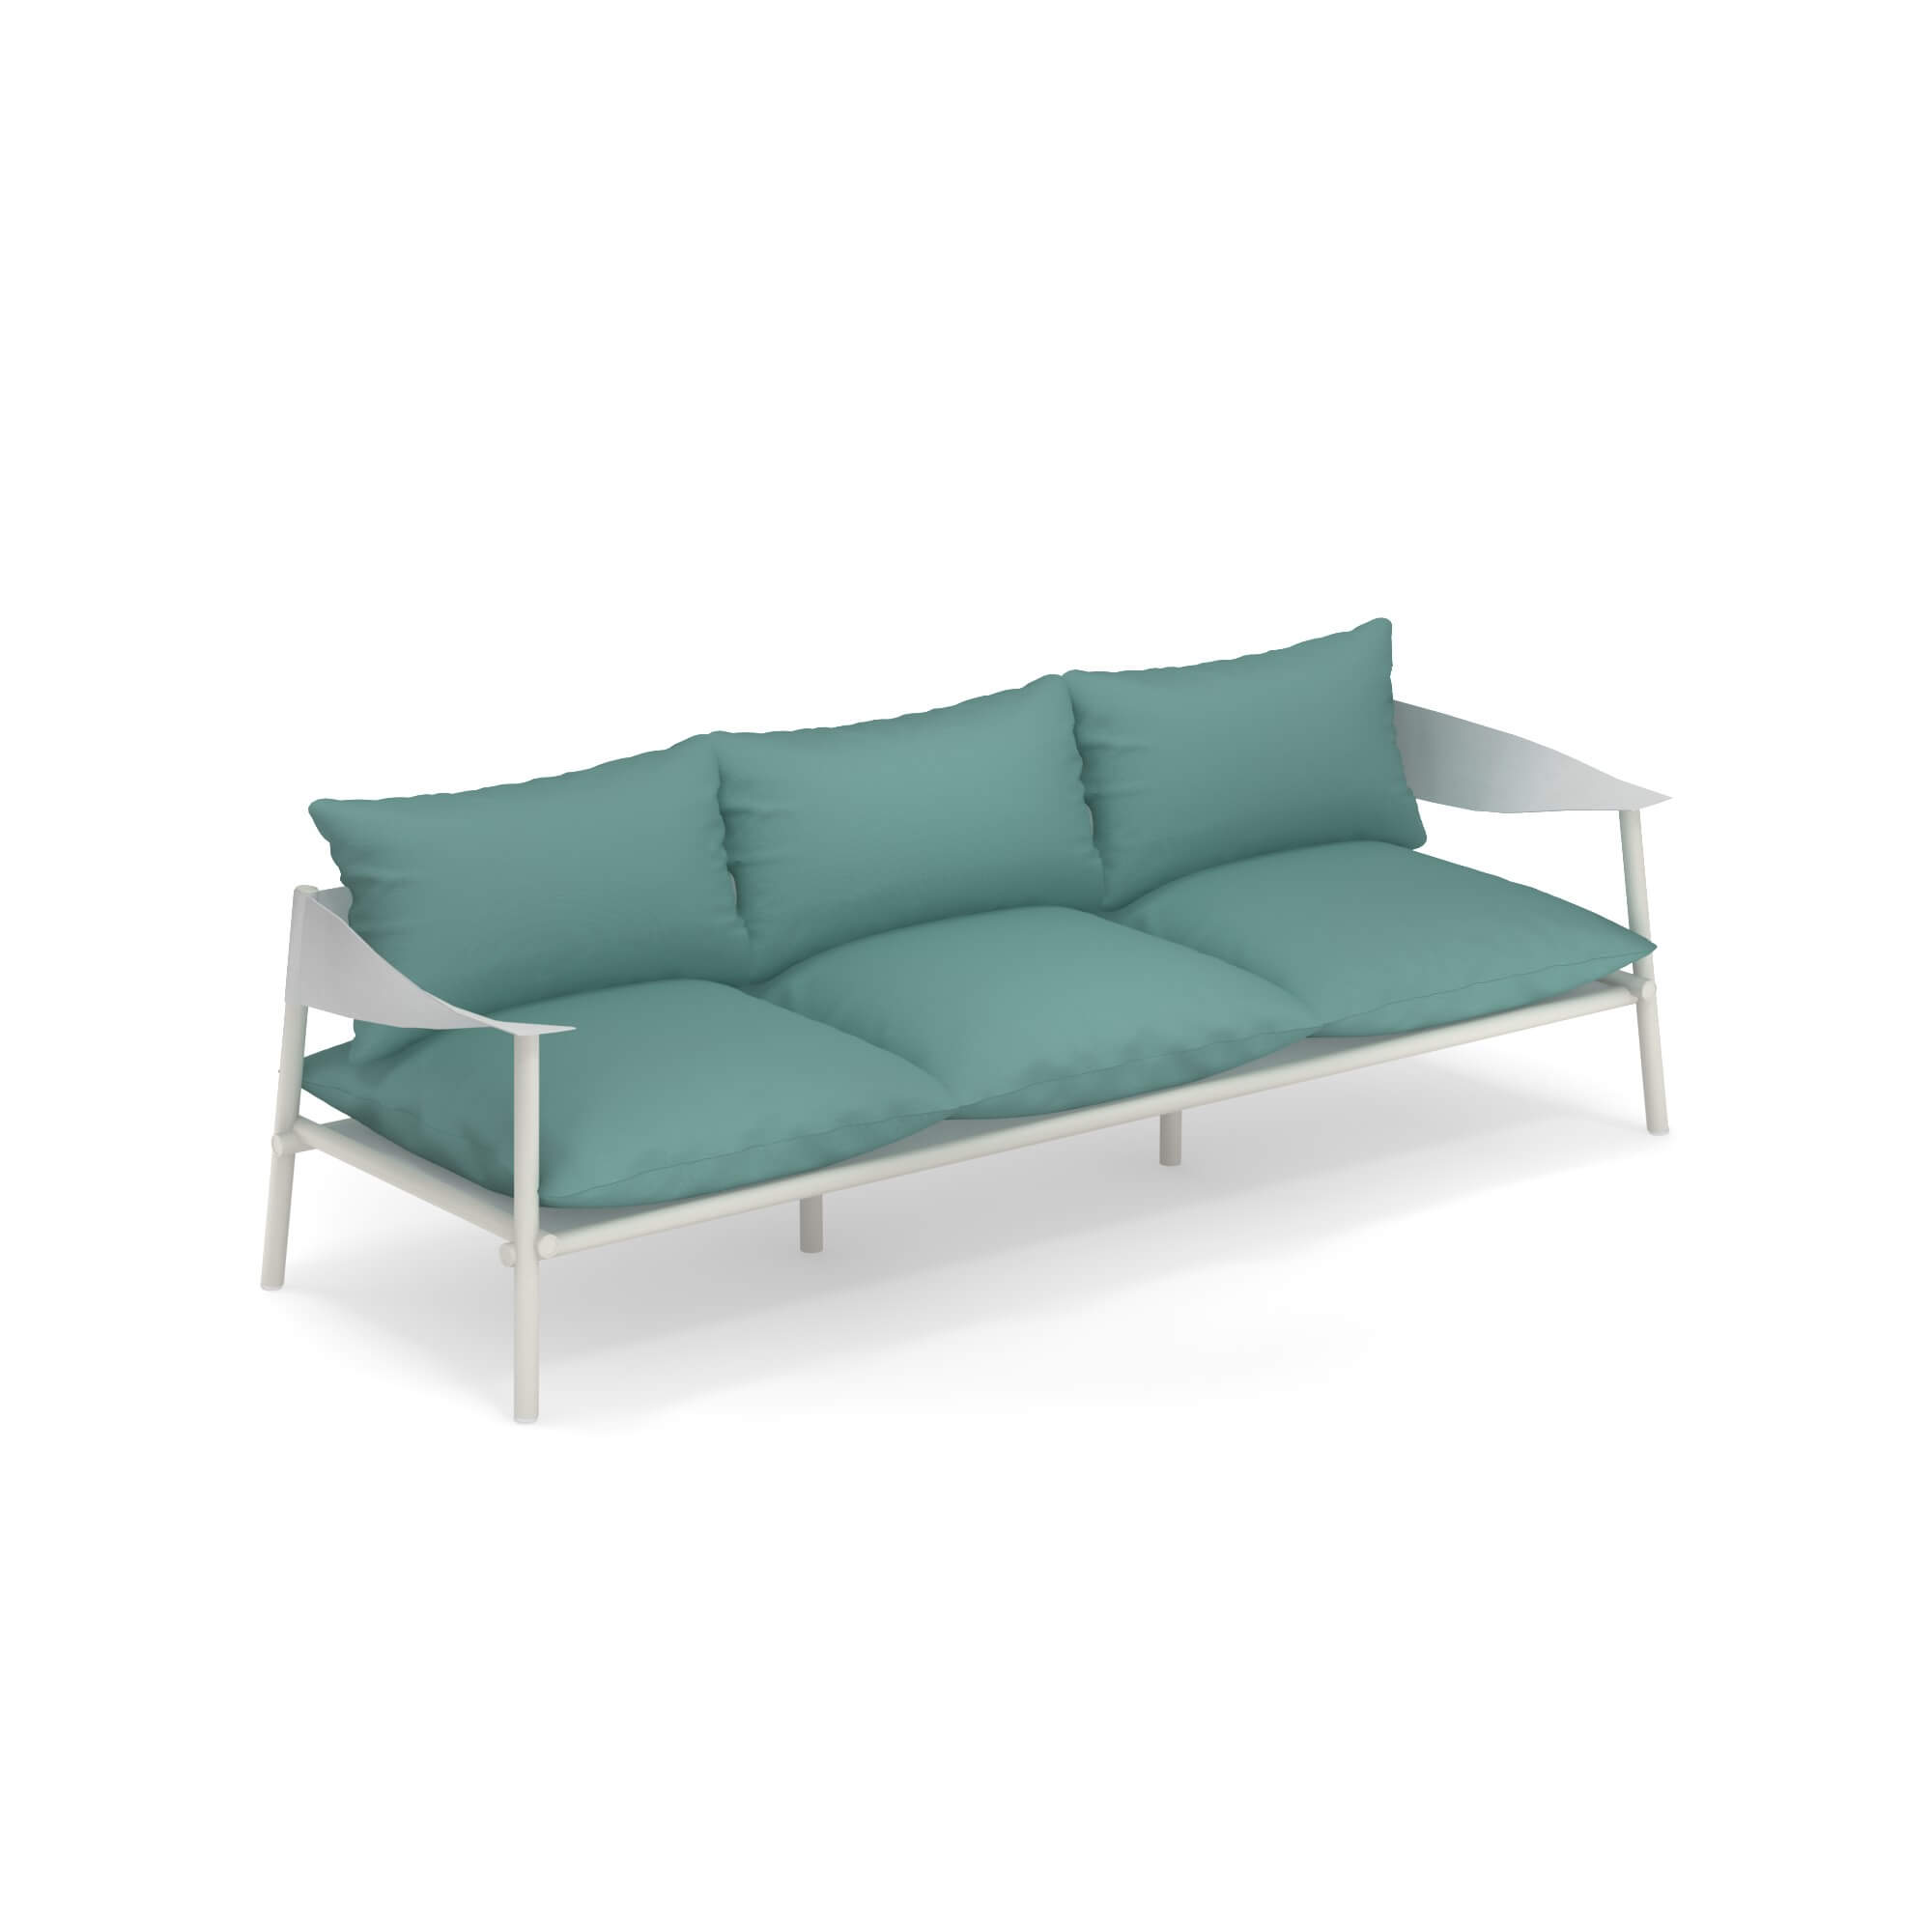 Terramare Three Seater Sofa - Welcoming shapes and wide dimensions characterise the Terramare collection by Studio Chiaramonte-Marin, ideal for cosy and personal settings both indoors and outdoors. A complete range of furniture for both dining and living areas. This sofa has a frame made from aluminium and armrests in eco-leather. This sofa does not come with cushions. Please enquire for more details.     Matter of Stuff